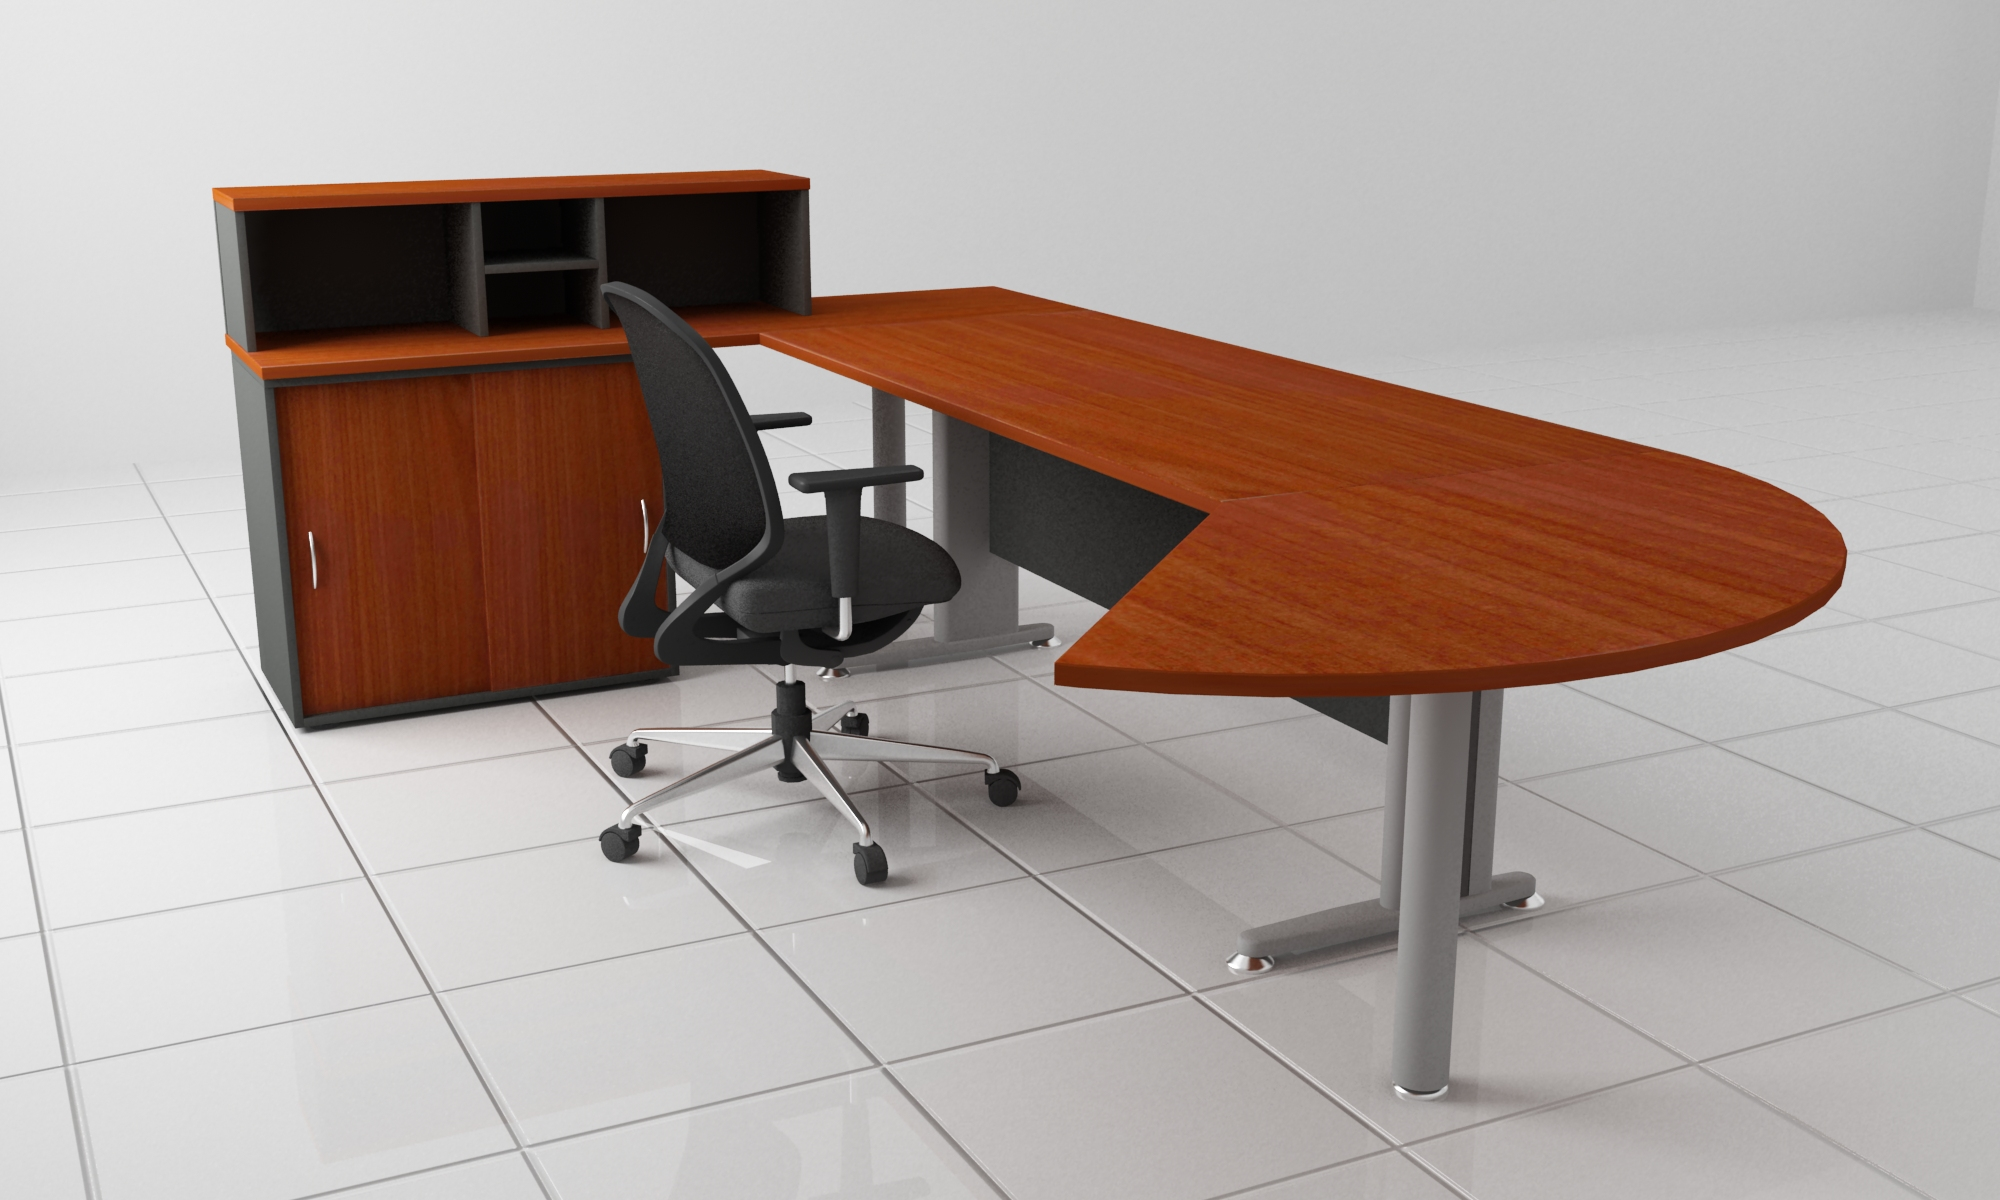 LINZ InternationalExecutive Desks - Desk with meeting table